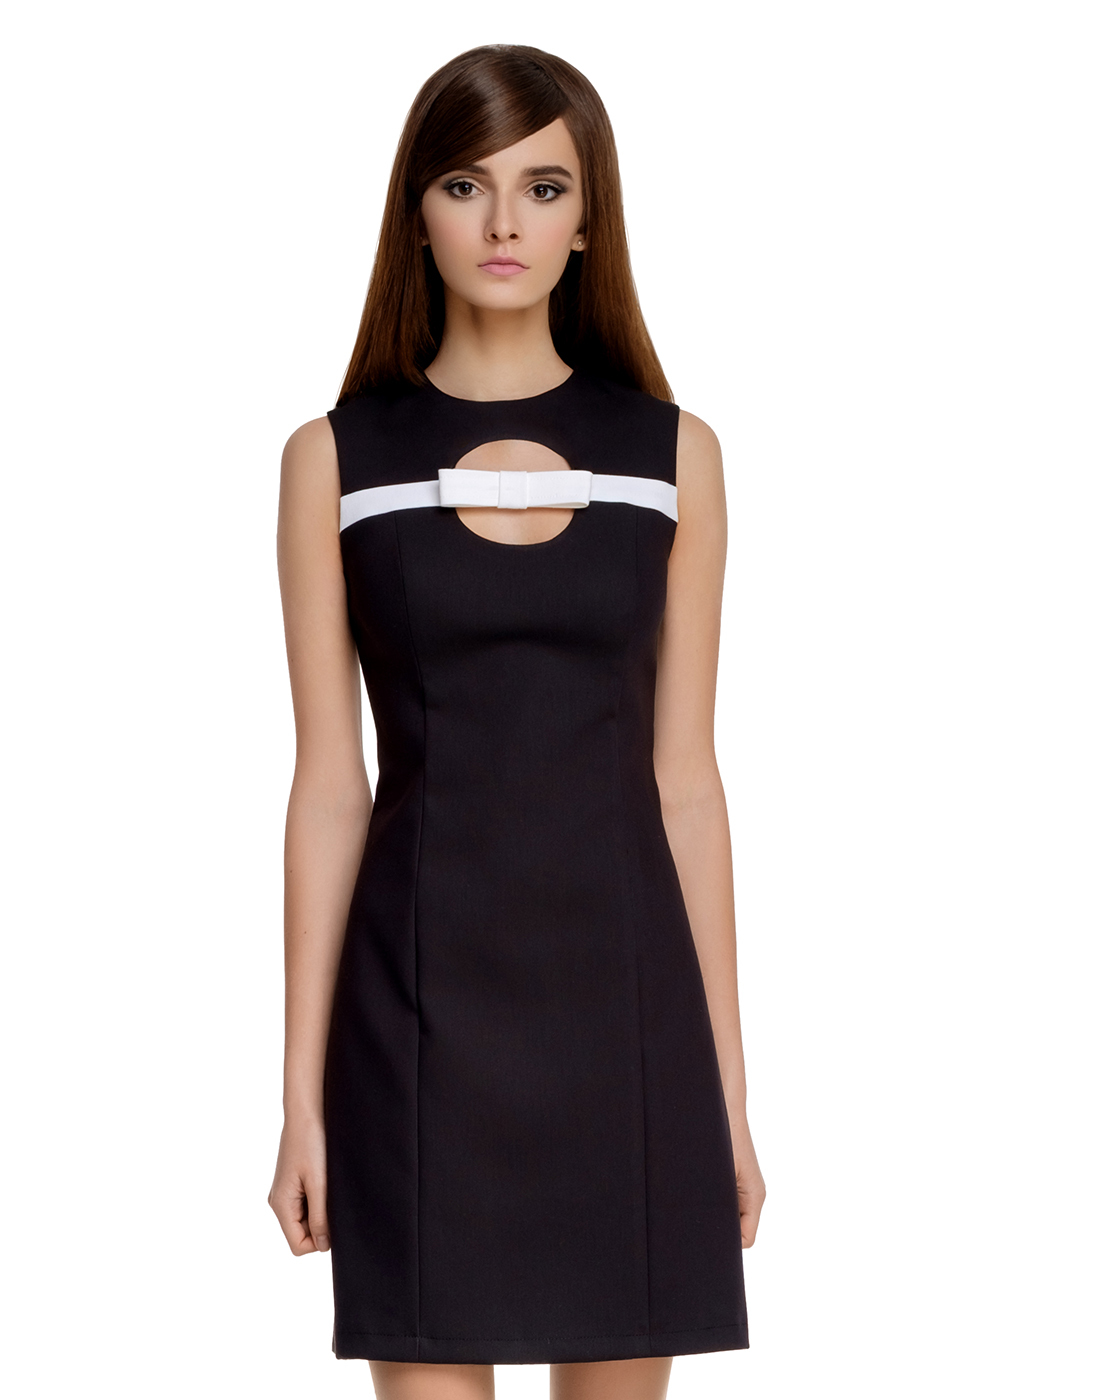 MARMALADE Retro 60s Mod Cut-Out Bow Dress in Black